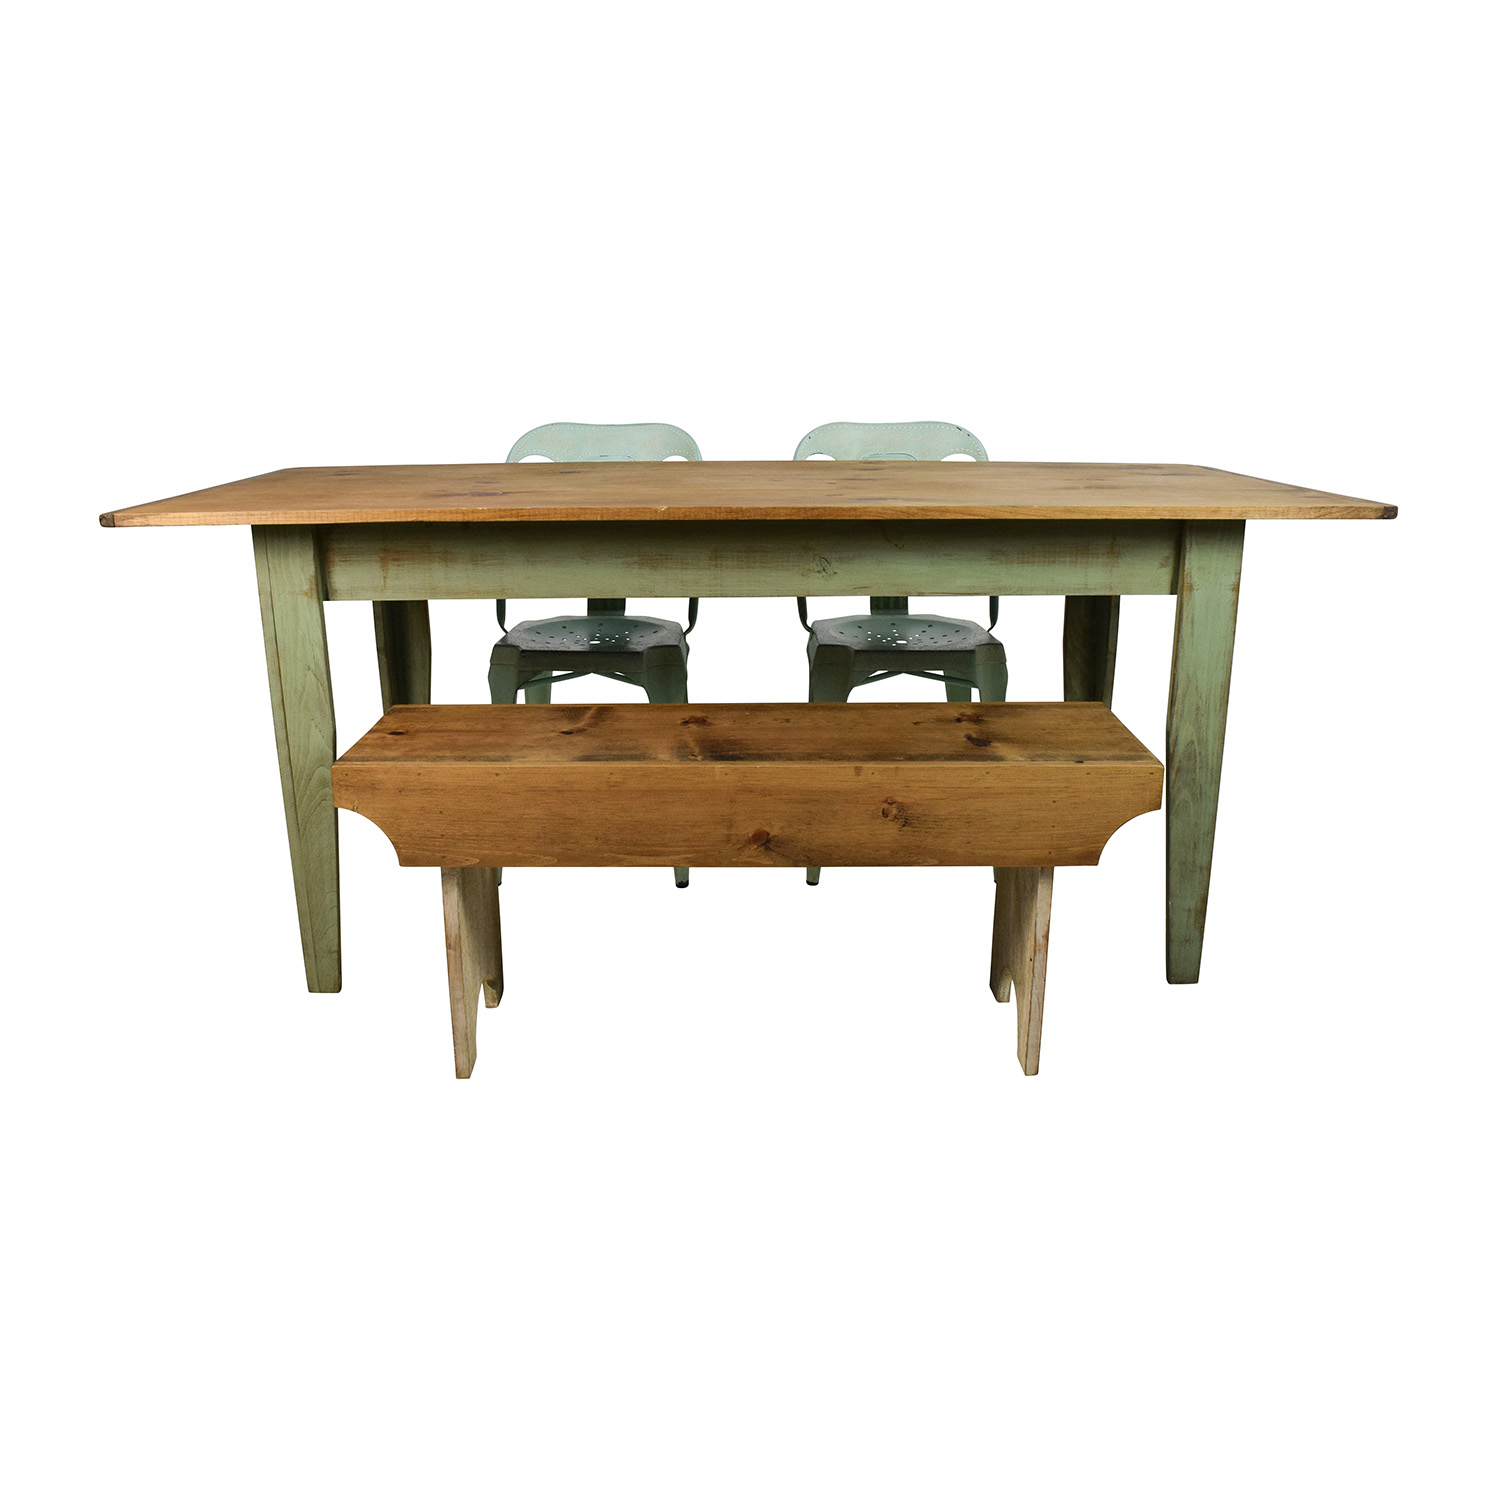 Marvelous 34 Off Wayfair Urban Outfitters Rustic Farm Table With Bench And Chairs Tables Bralicious Painted Fabric Chair Ideas Braliciousco